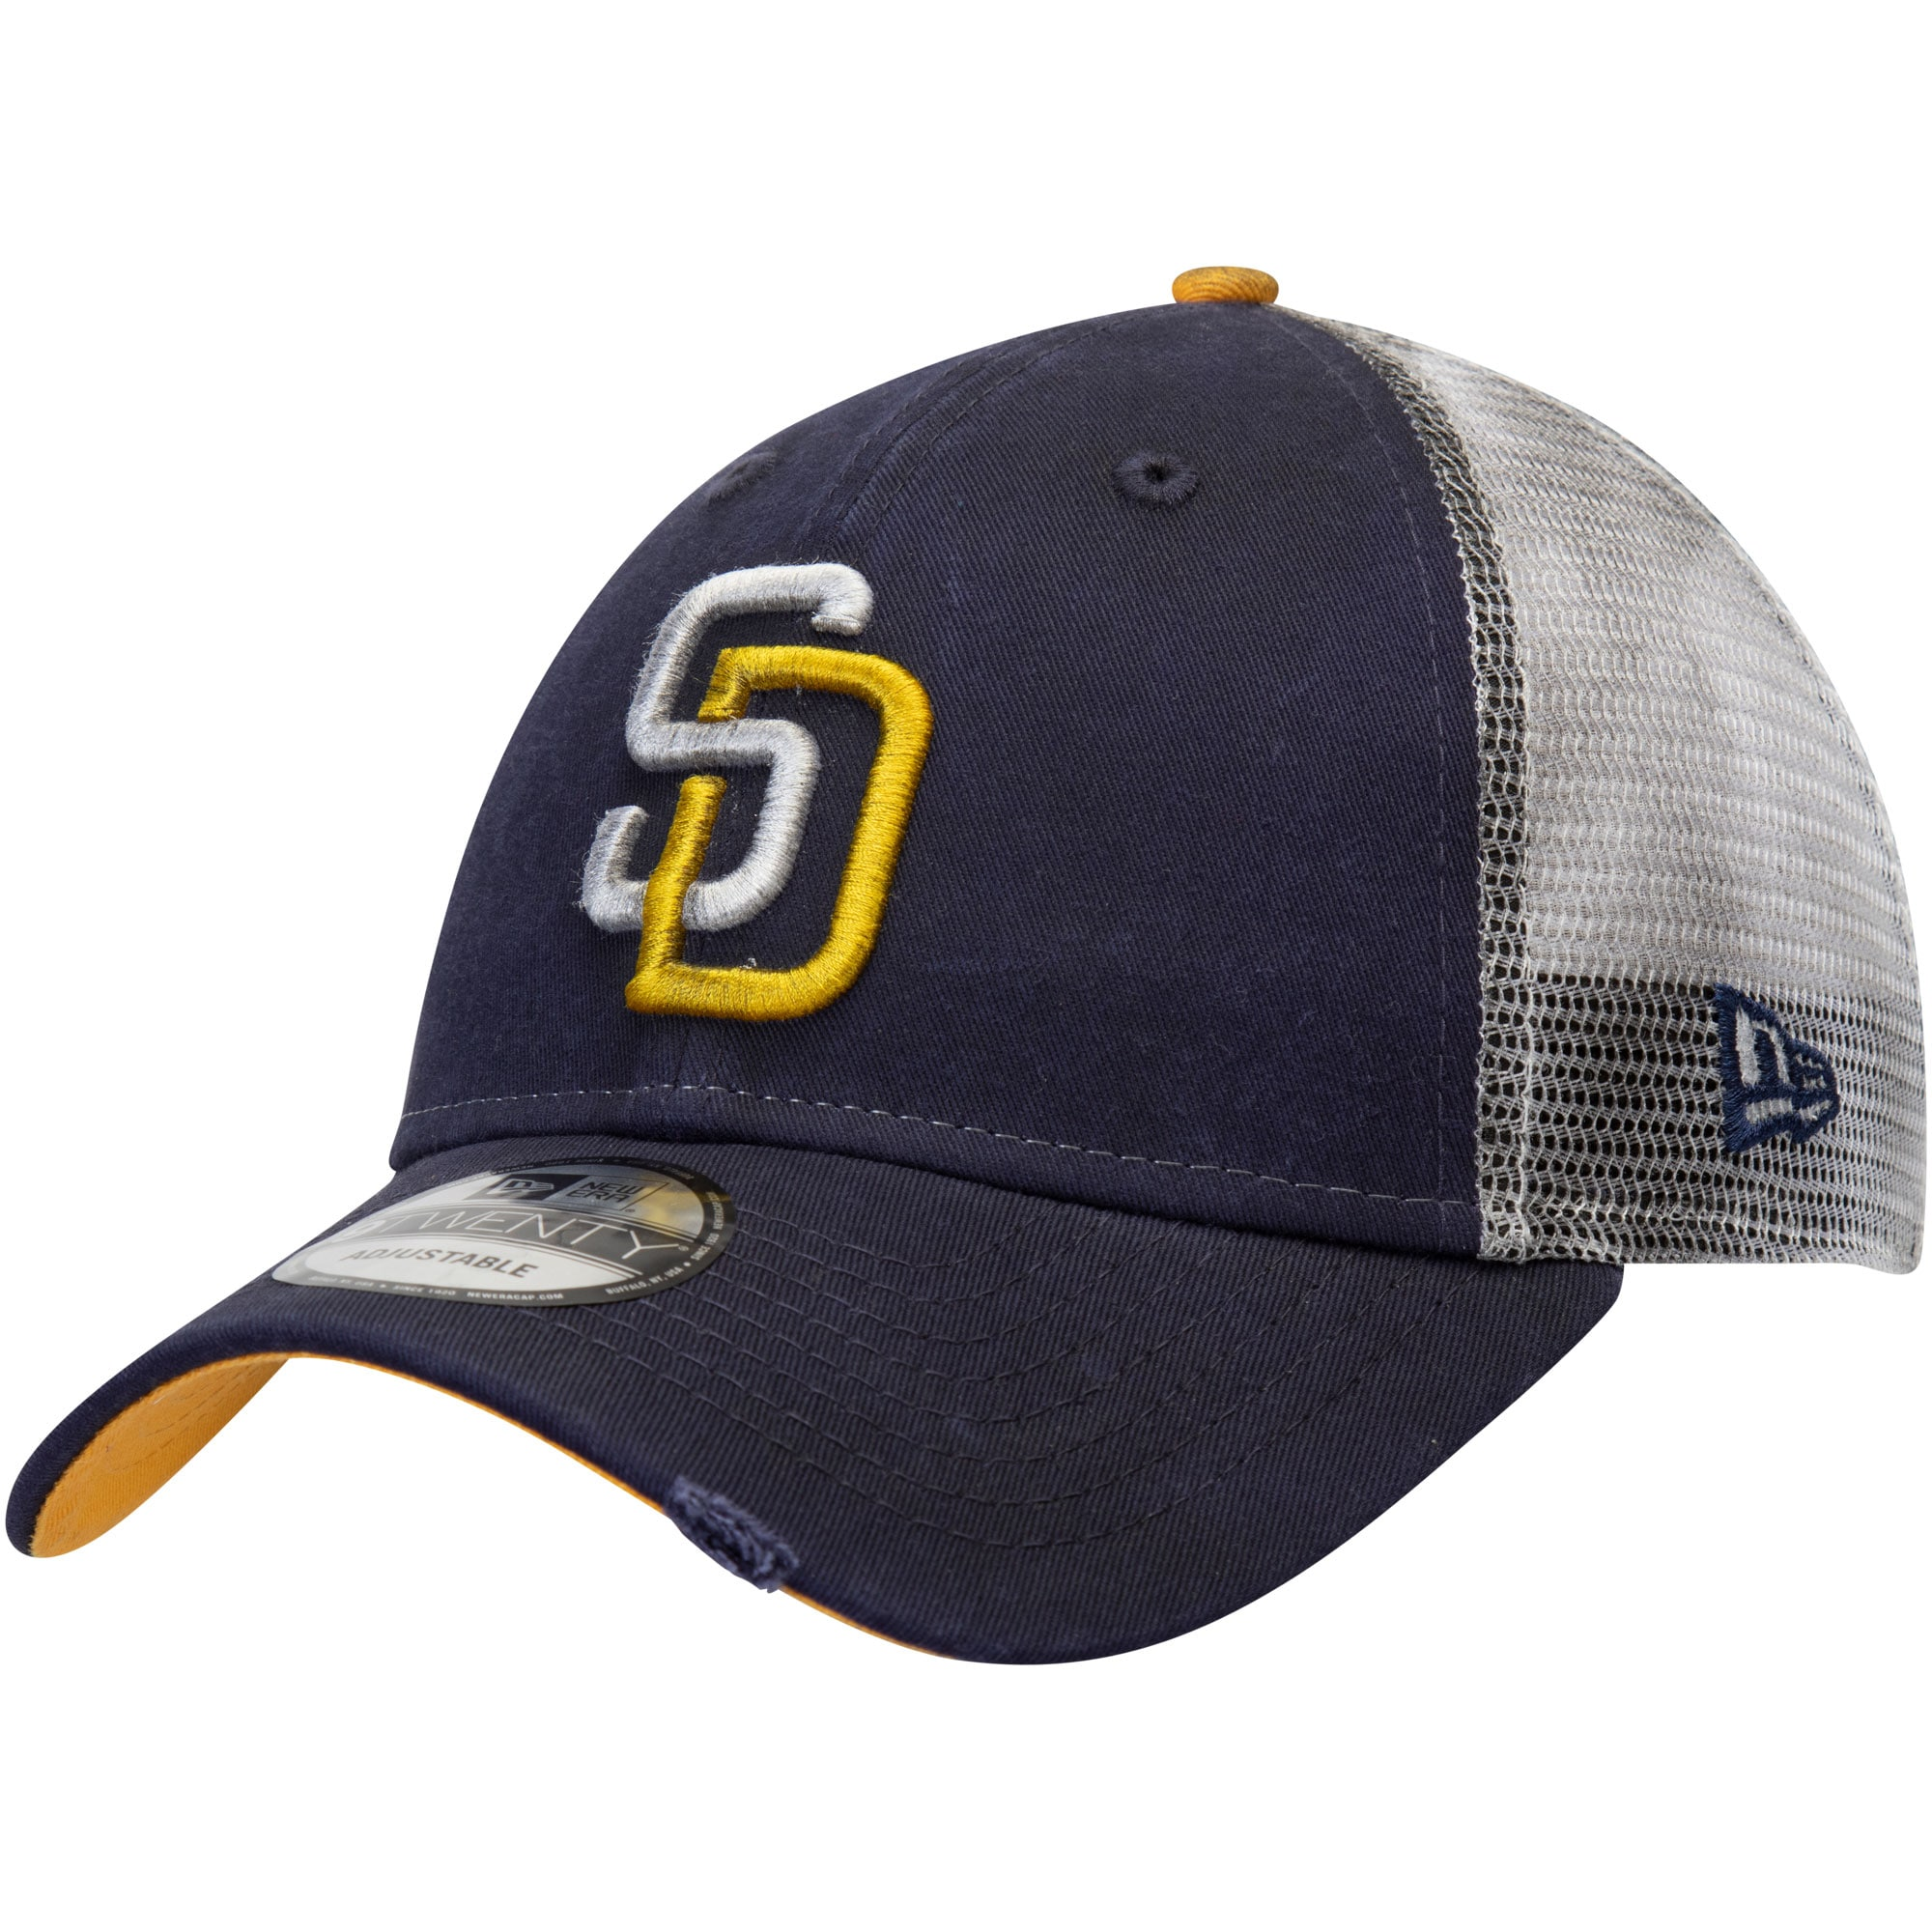 San Diego Padres New Era Team Rustic 9TWENTY Adjustable Hat - Navy